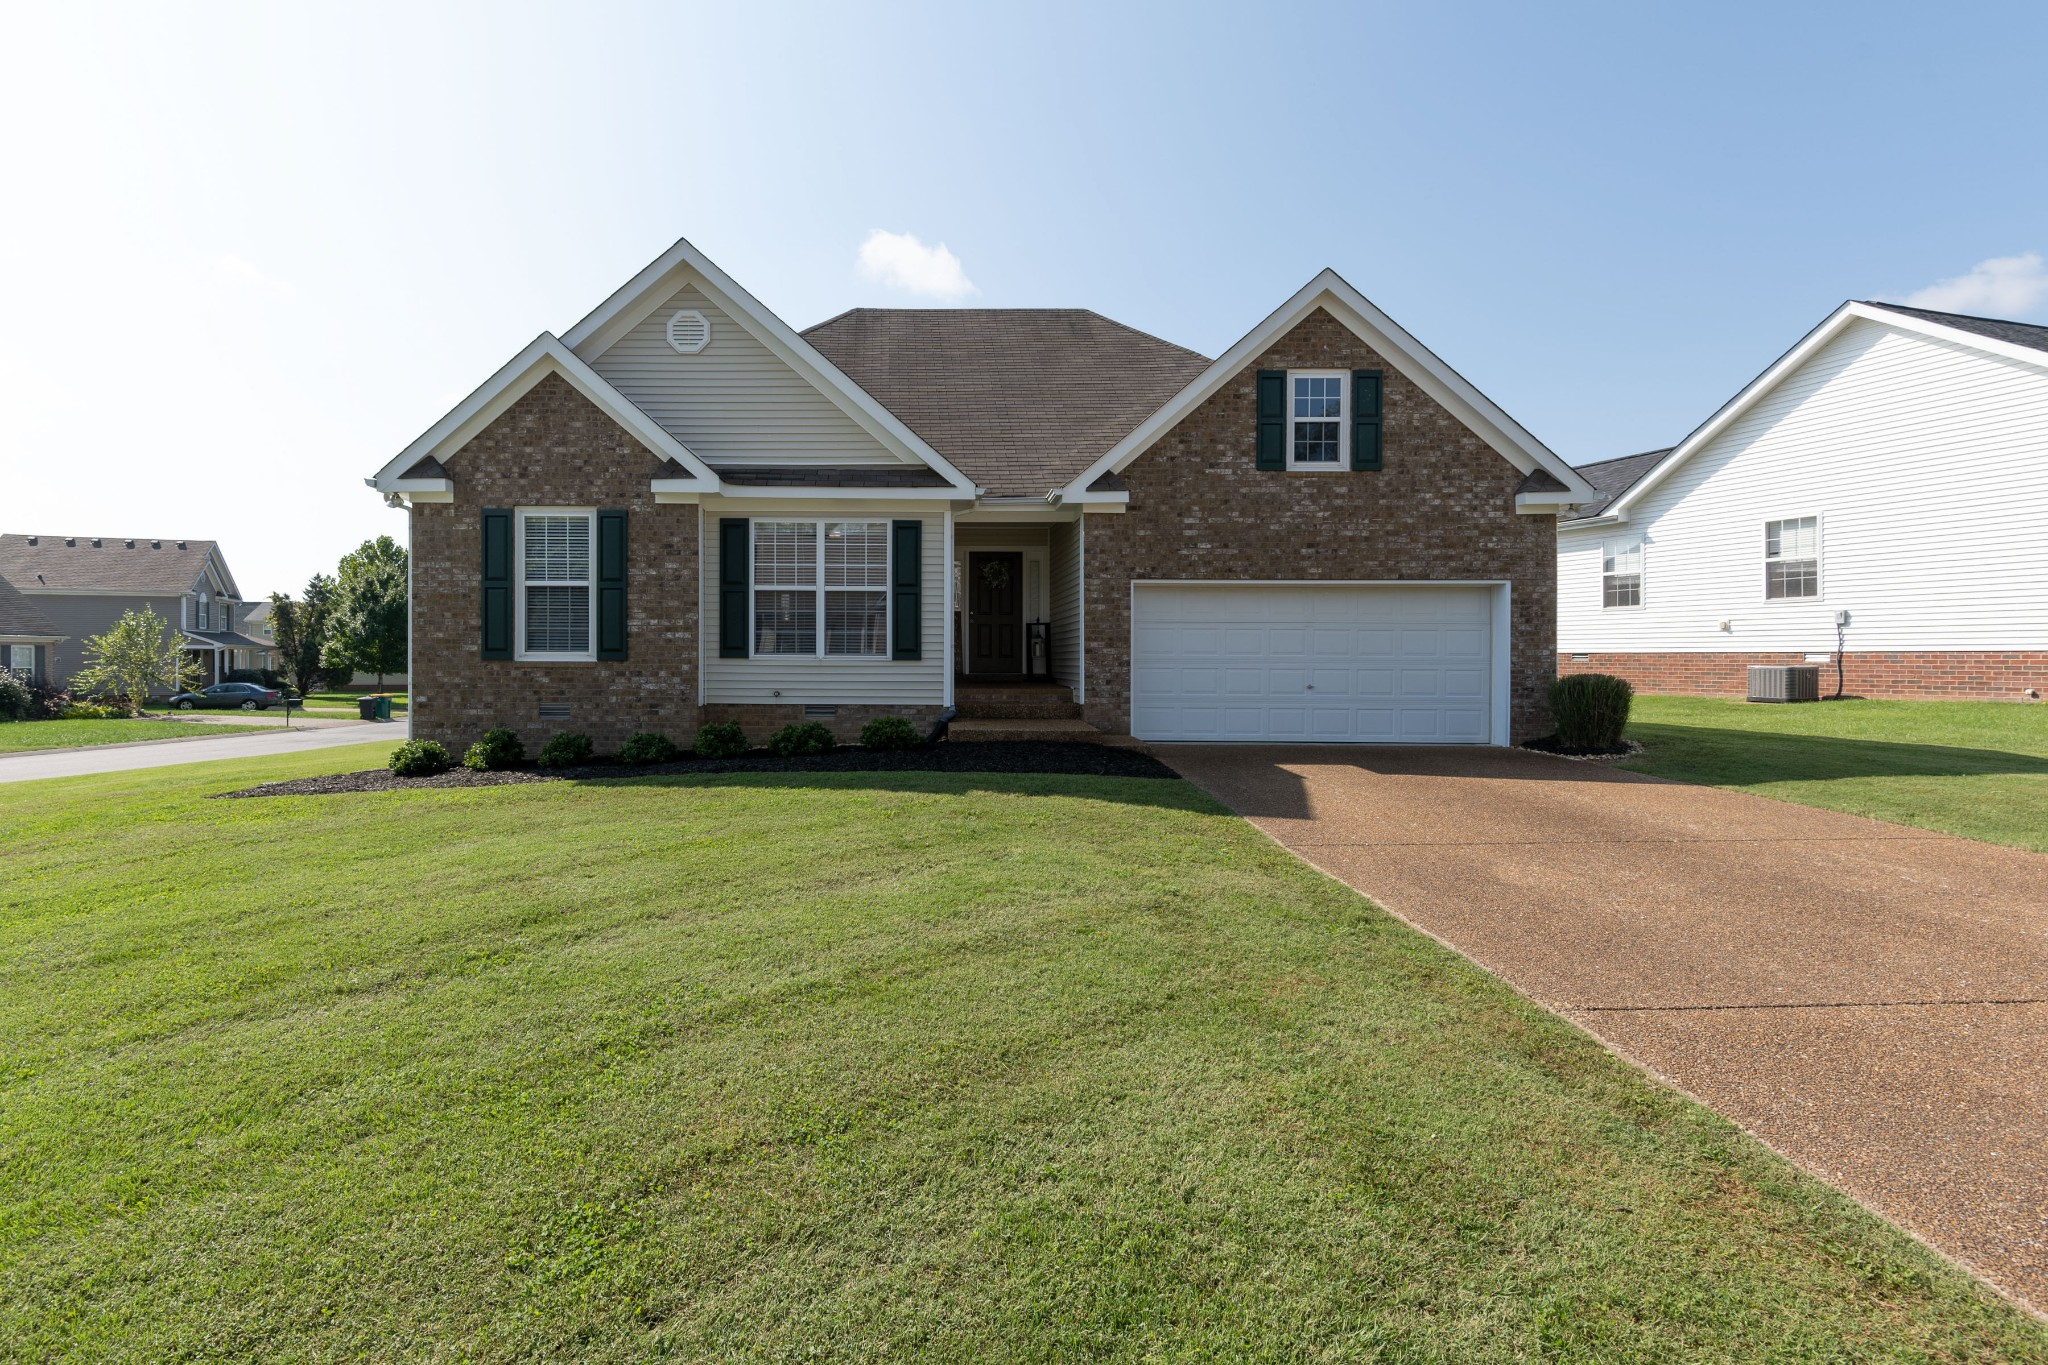 1003 Persimmon Dr Property Photo 1